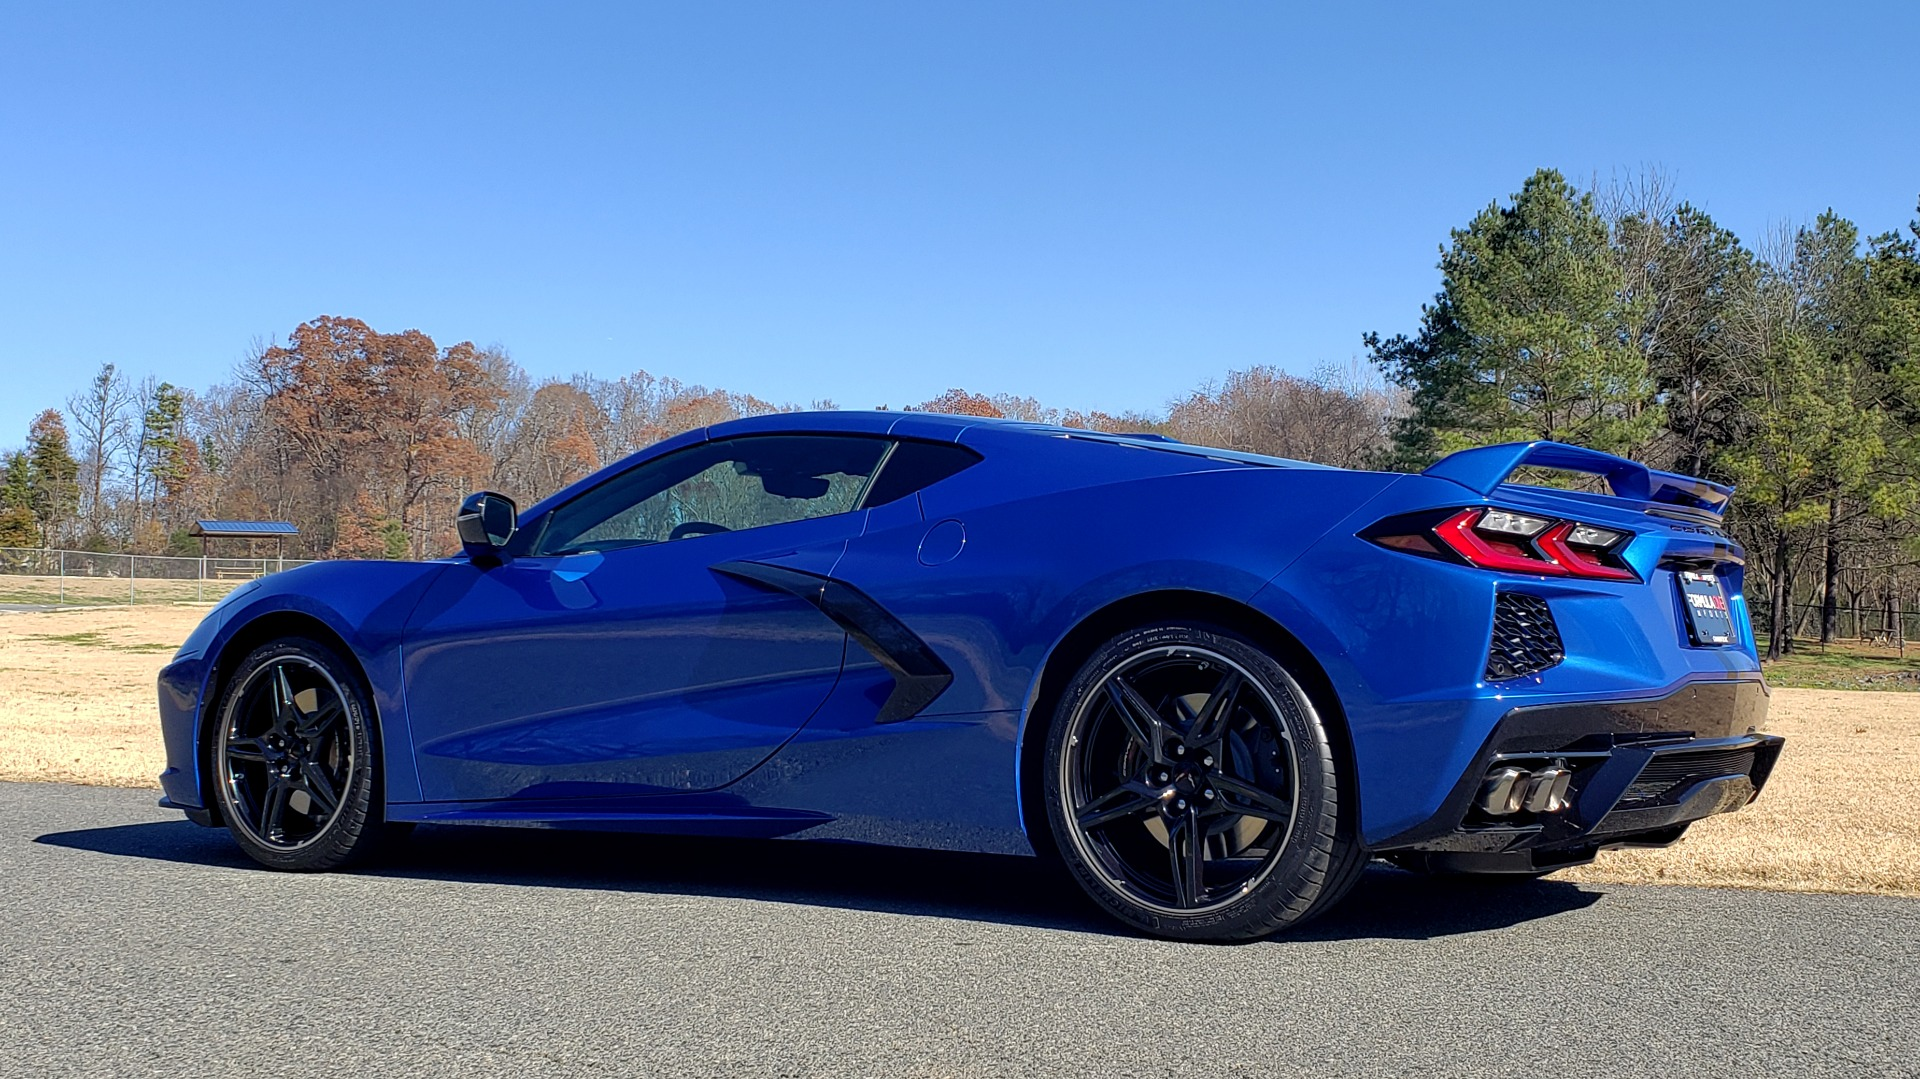 Used 2020 Chevrolet C8 CORVETTE STINGRAY 2LT COUPE / NAV / HUD / BOSE / GT2 SEATS / FRONT LIFT / REARVIEW for sale Sold at Formula Imports in Charlotte NC 28227 7